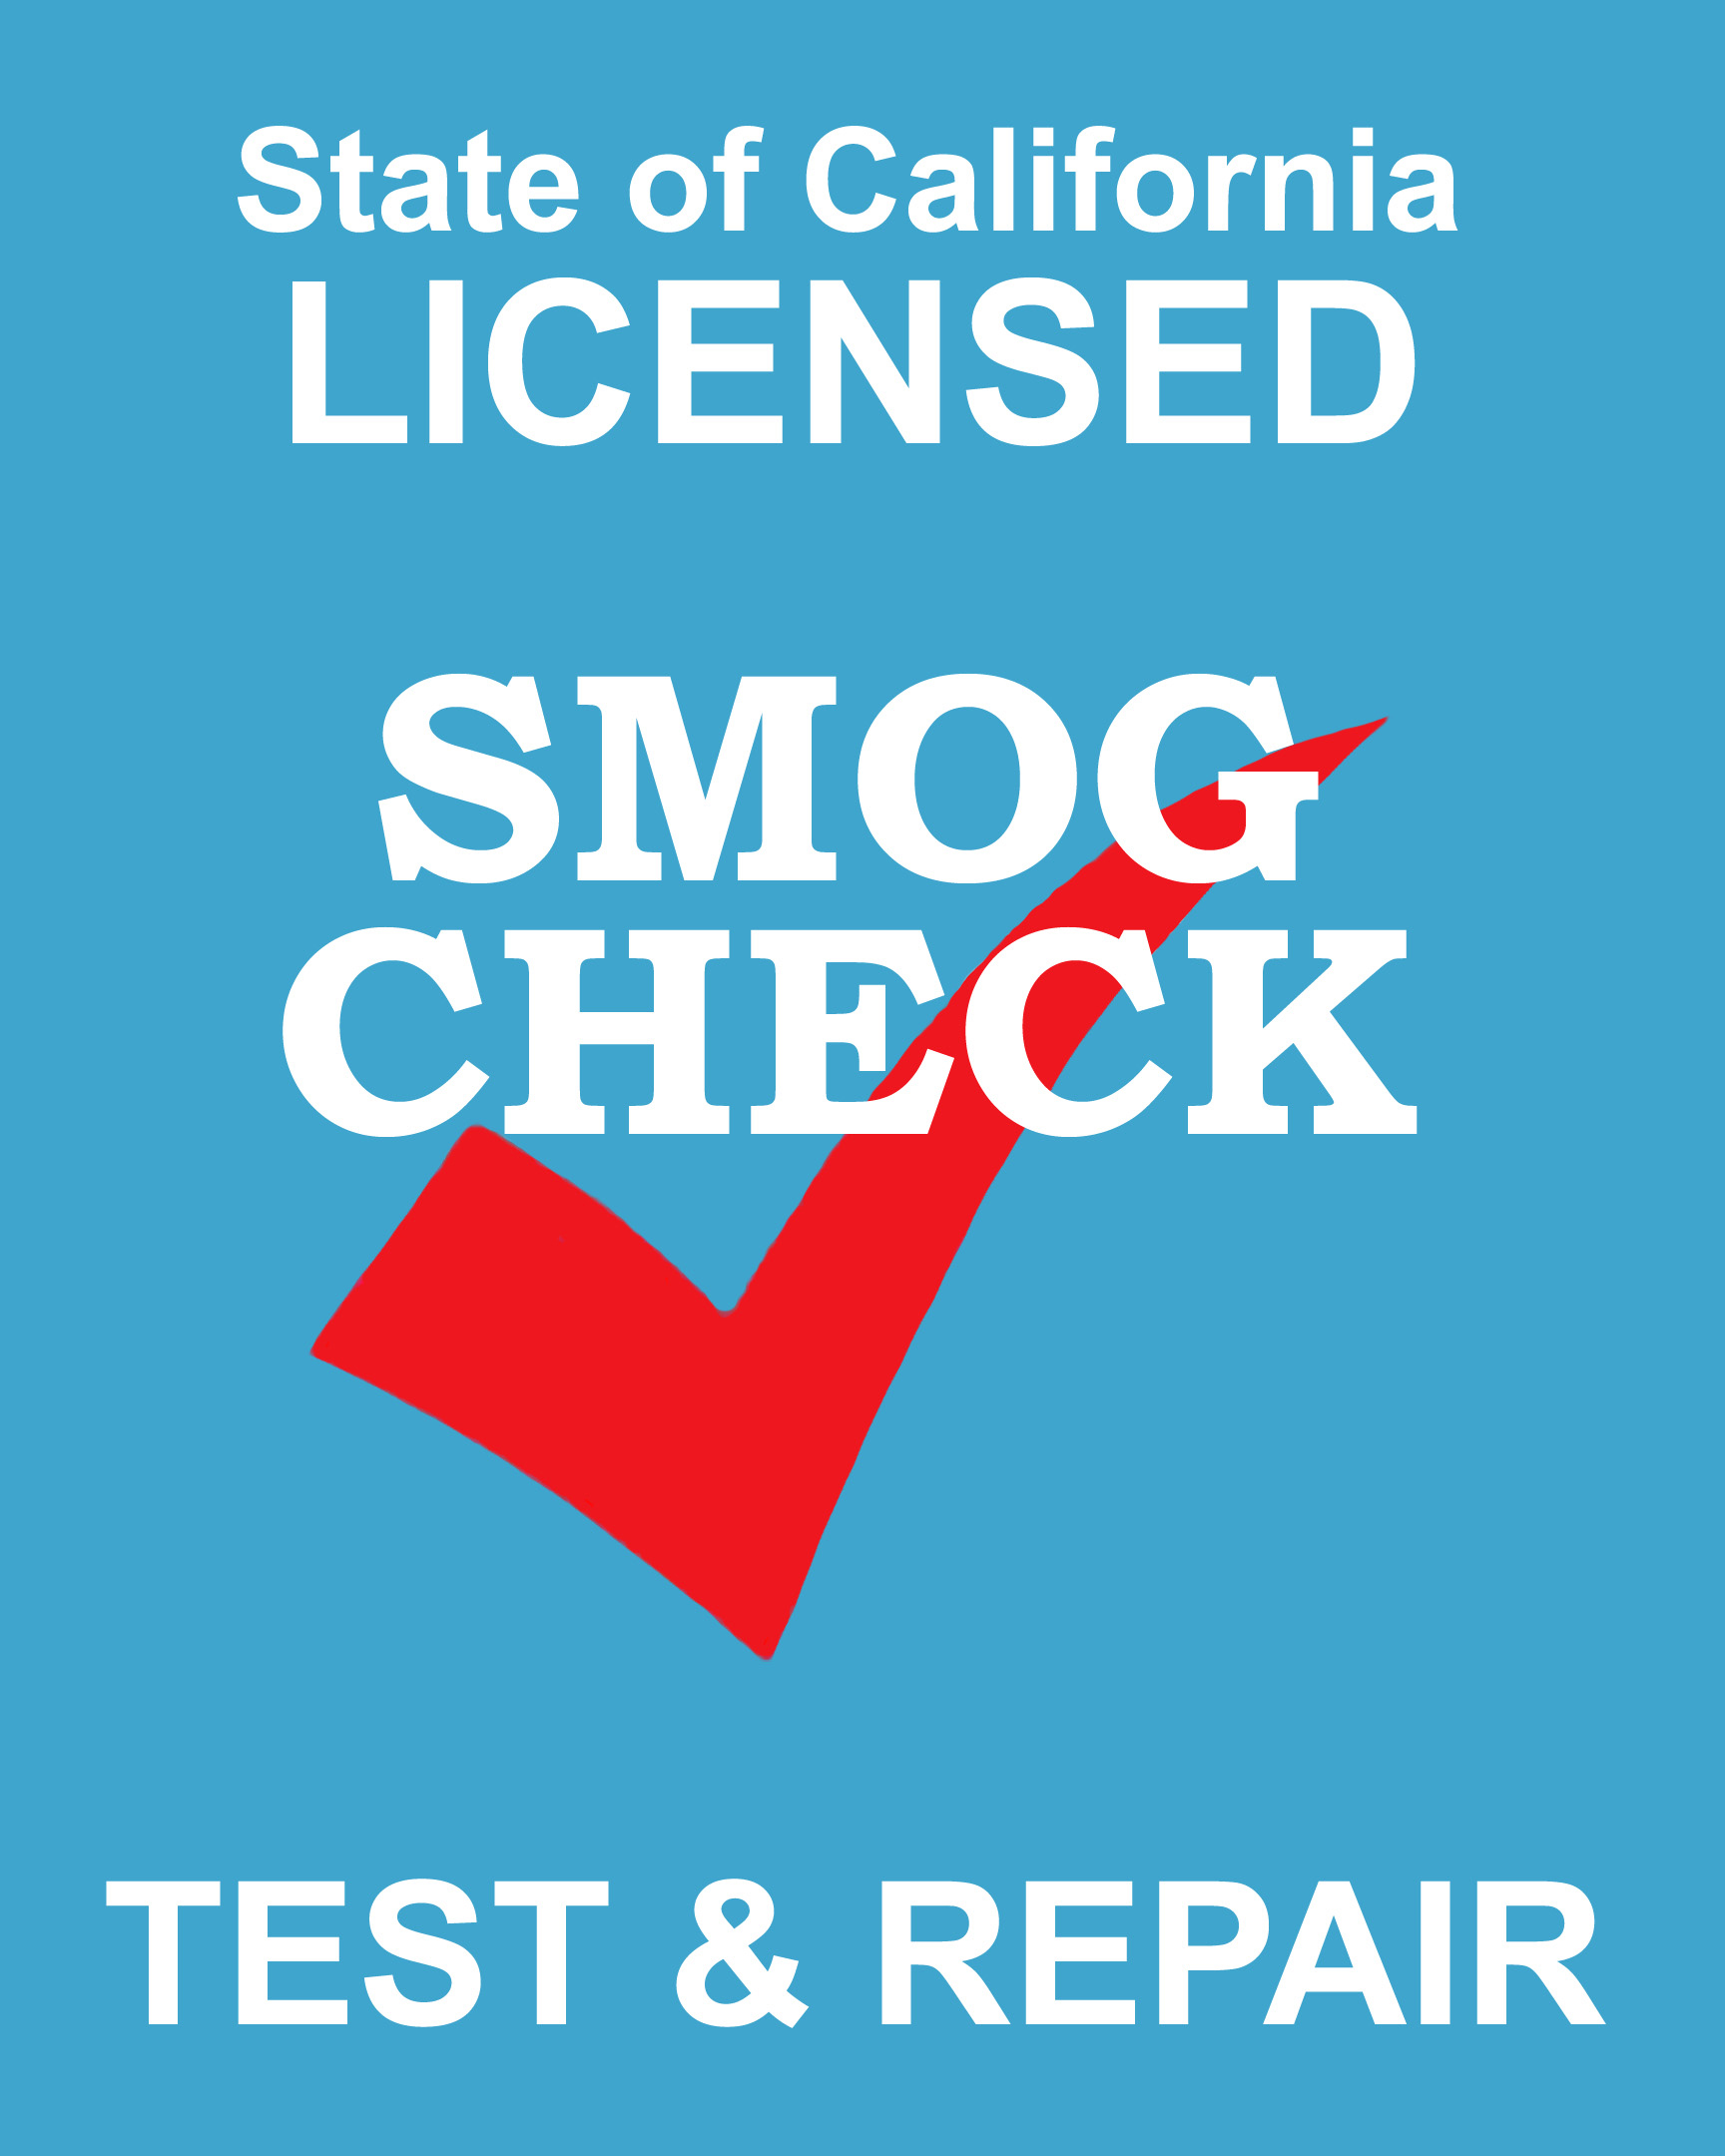 Licensed Smog, Car Care Center, Sacramento, CA, 95825